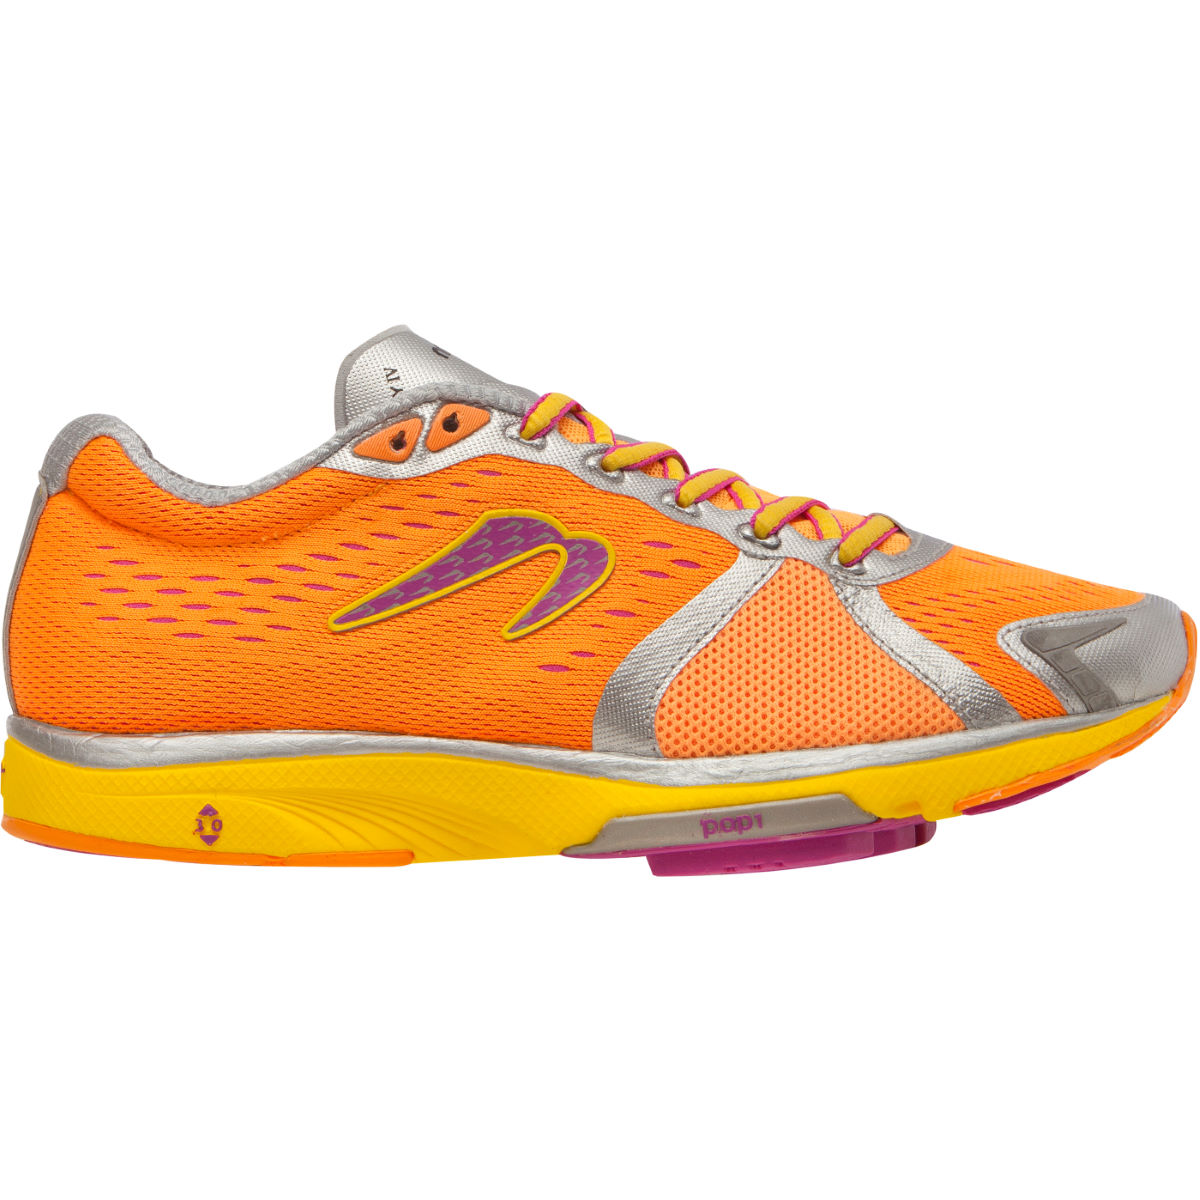 Chaussures Femme Newton Running Gravity IV Neutral (AH15) - 4,5 UK Orange /Yellow/Pink Chaussures de running amorties